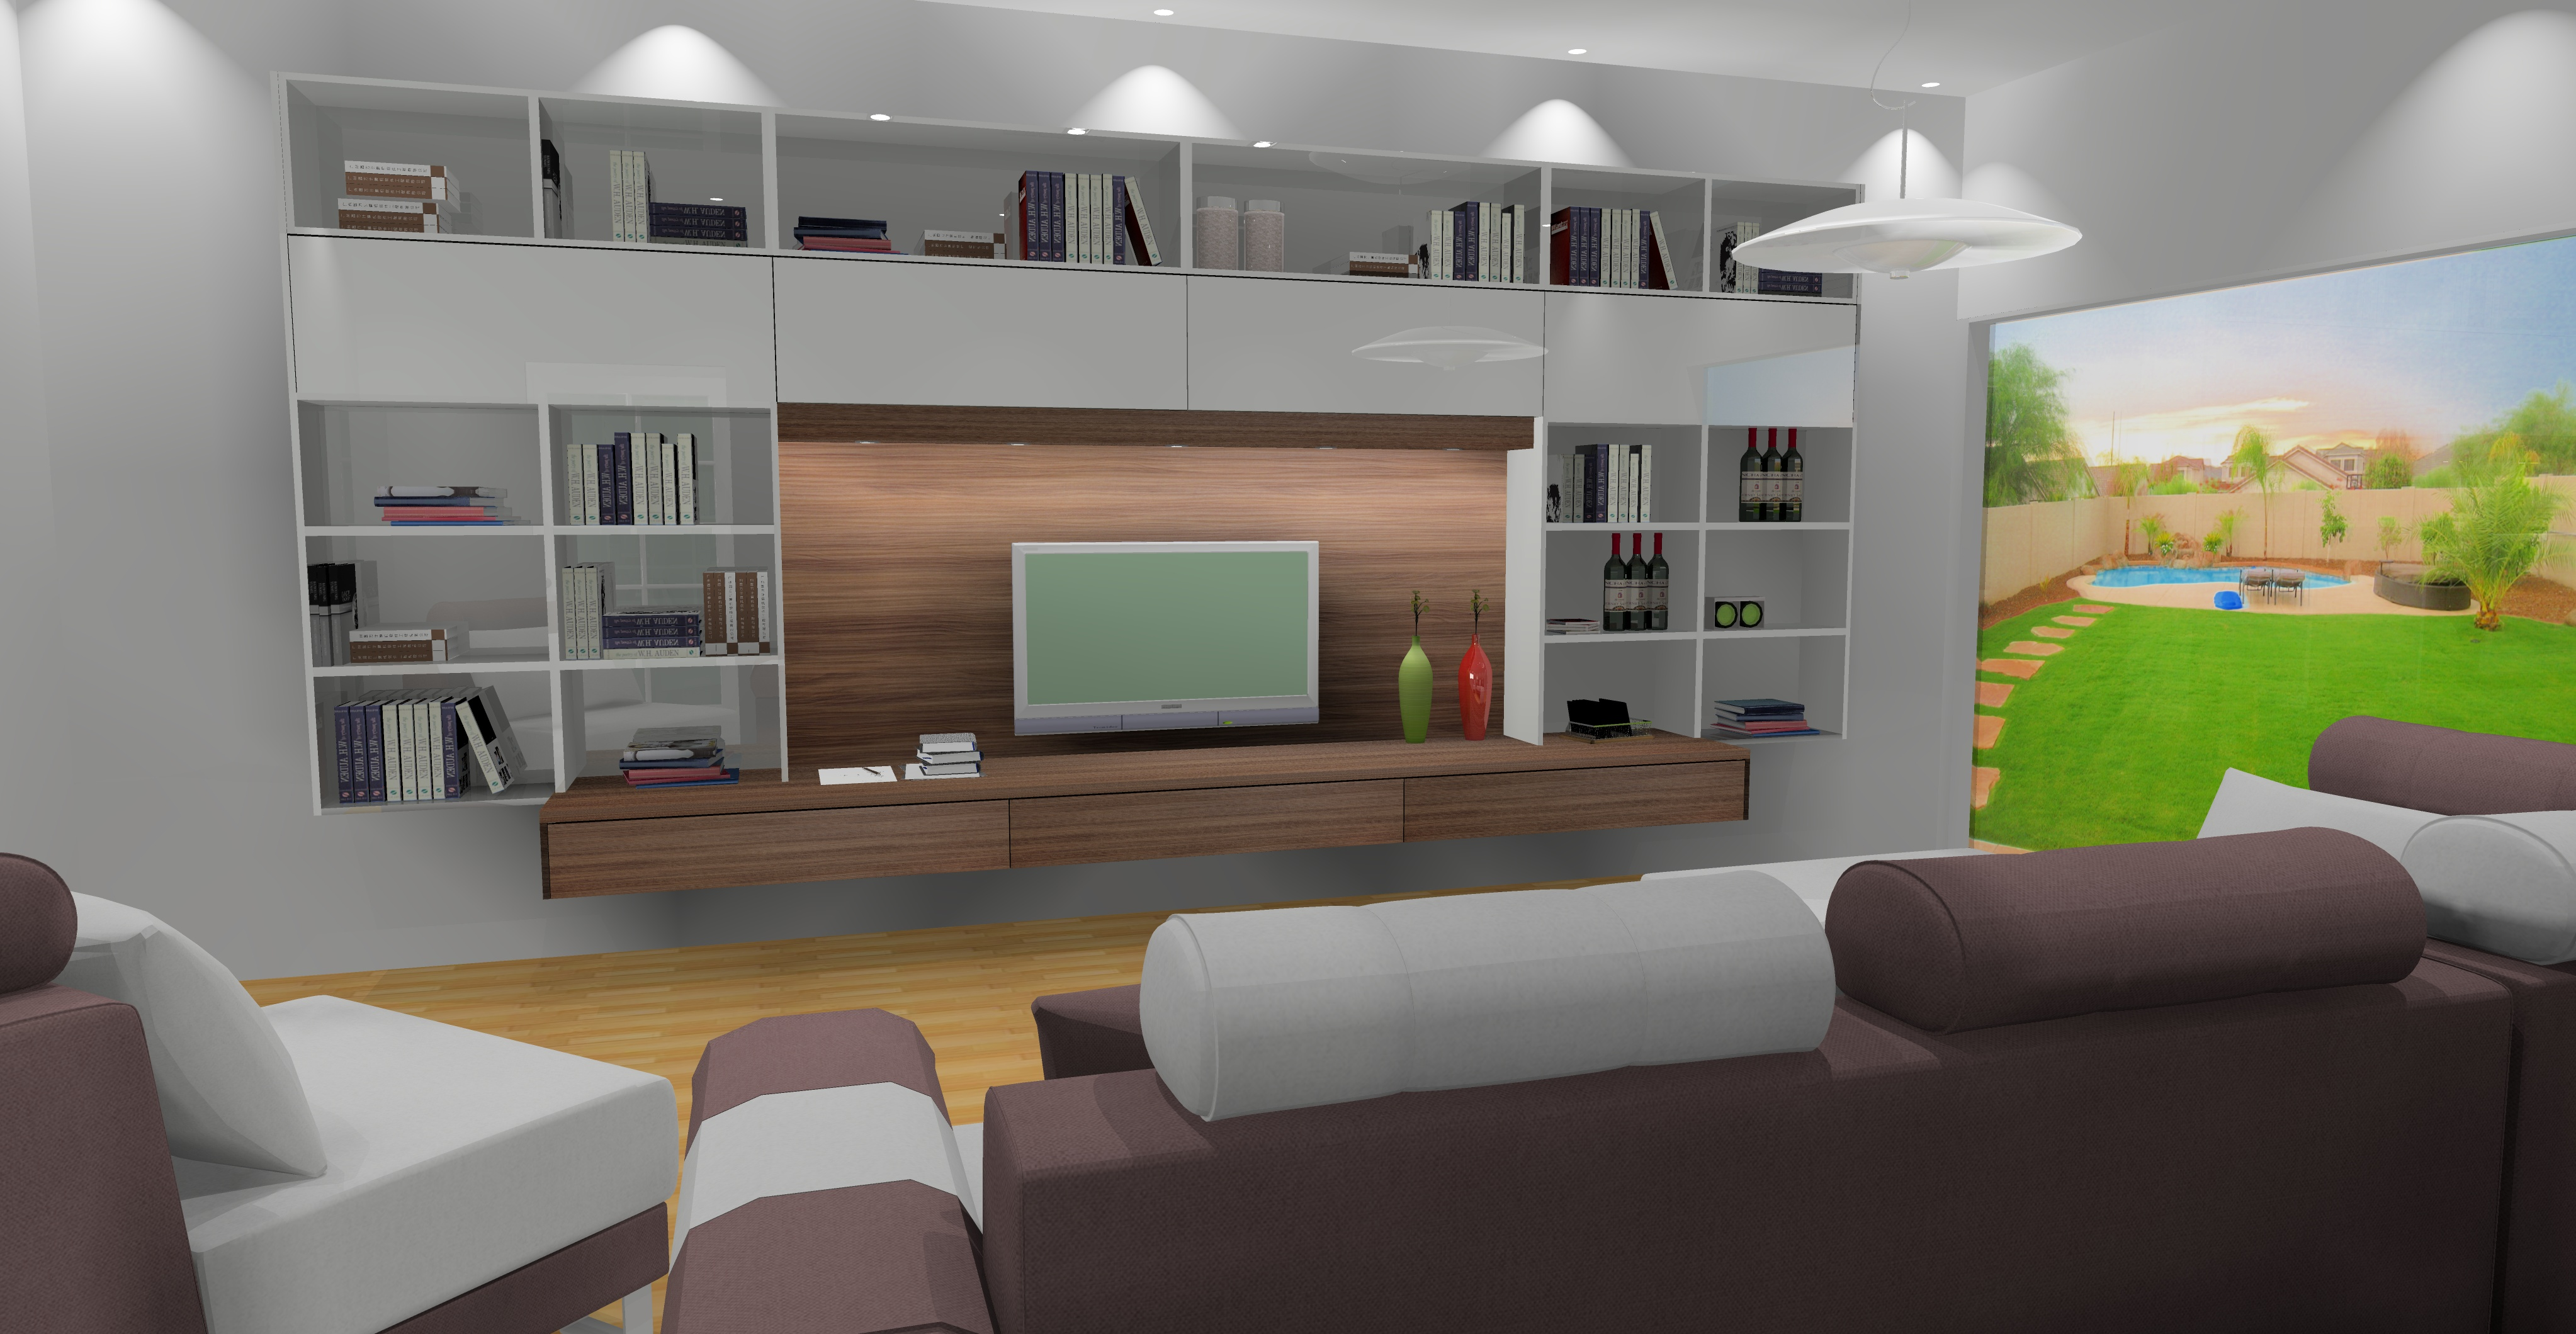 Kd Max 3d Kitchen Design Software Free Download Kd Max Innovative 3d Design Software Kitchen Software Solutions